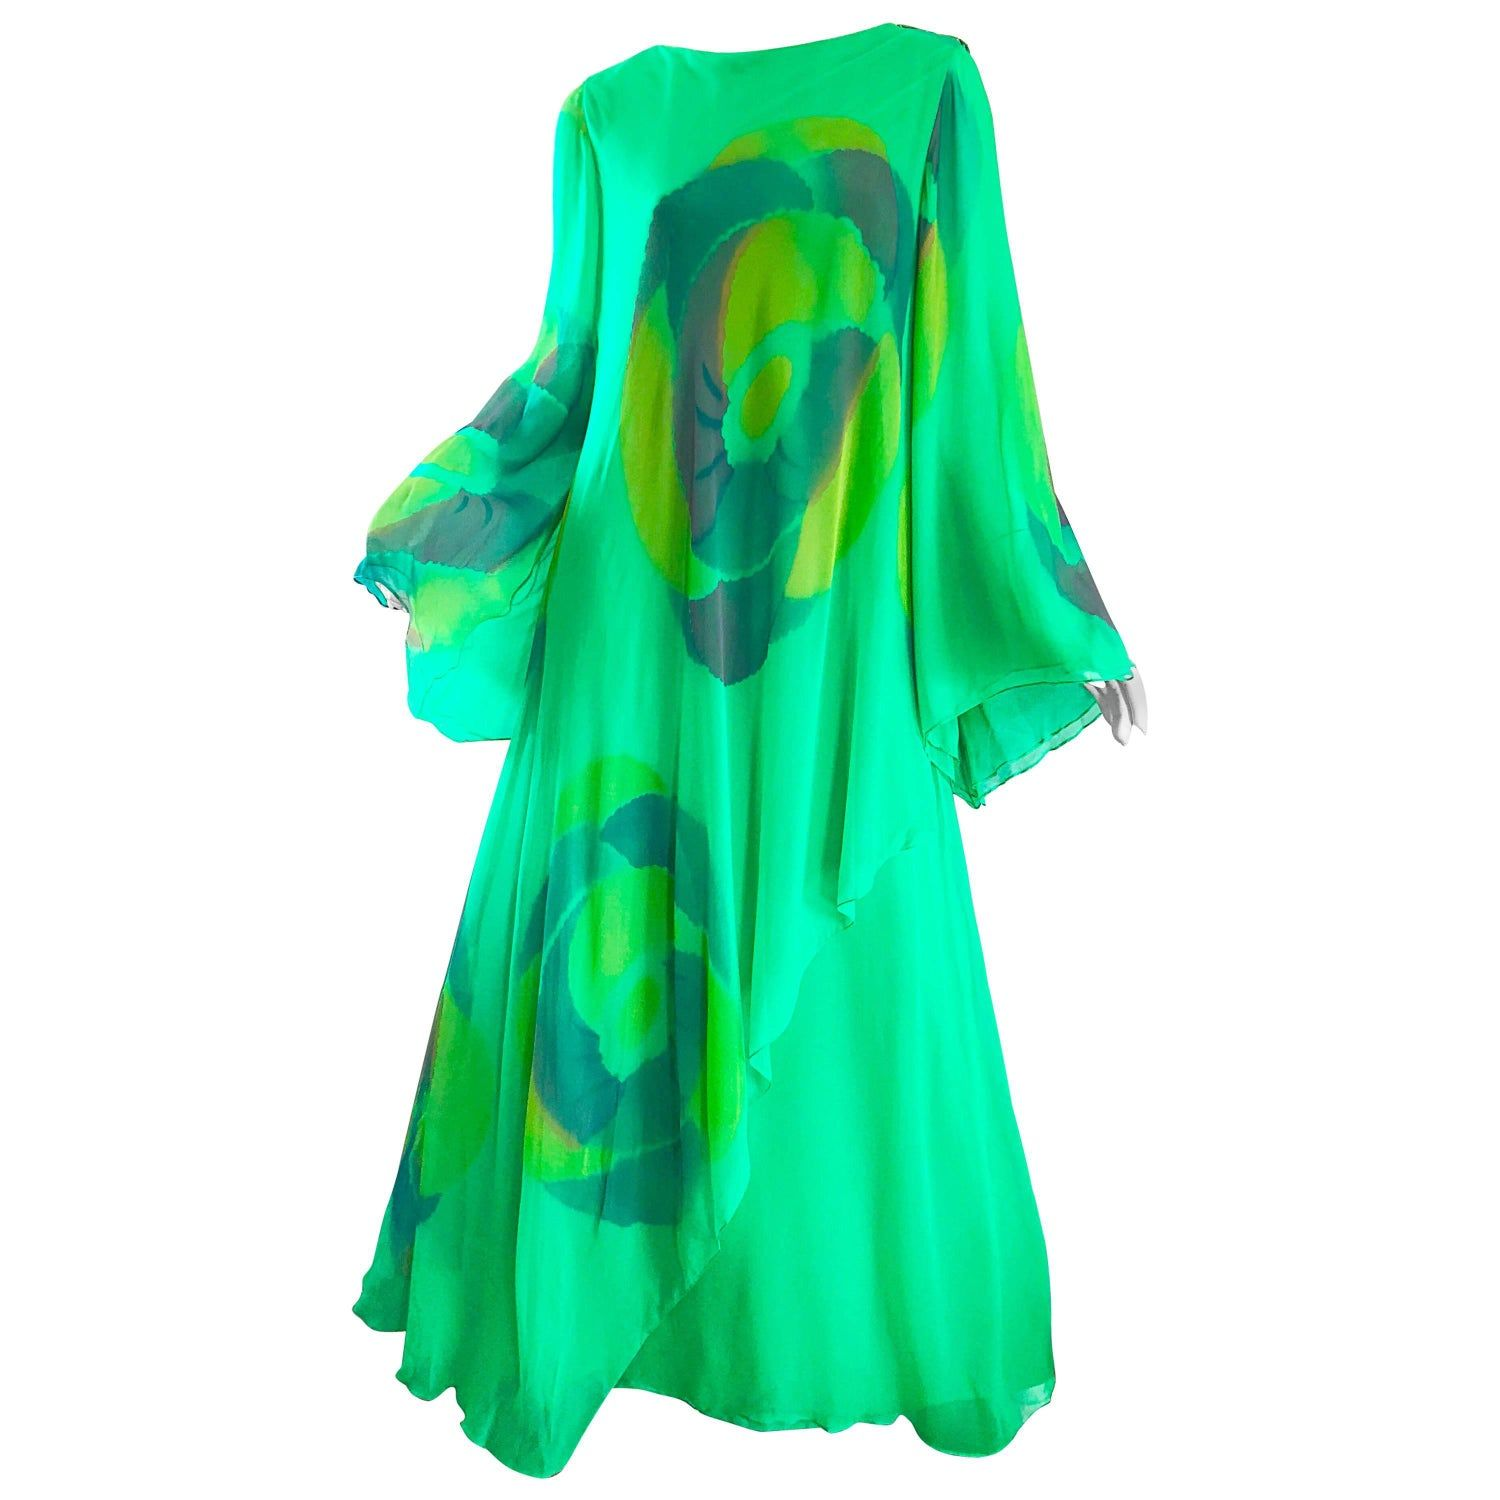 Vintage Travillia Couture 1970s Hand Painted Kelly Green Silk